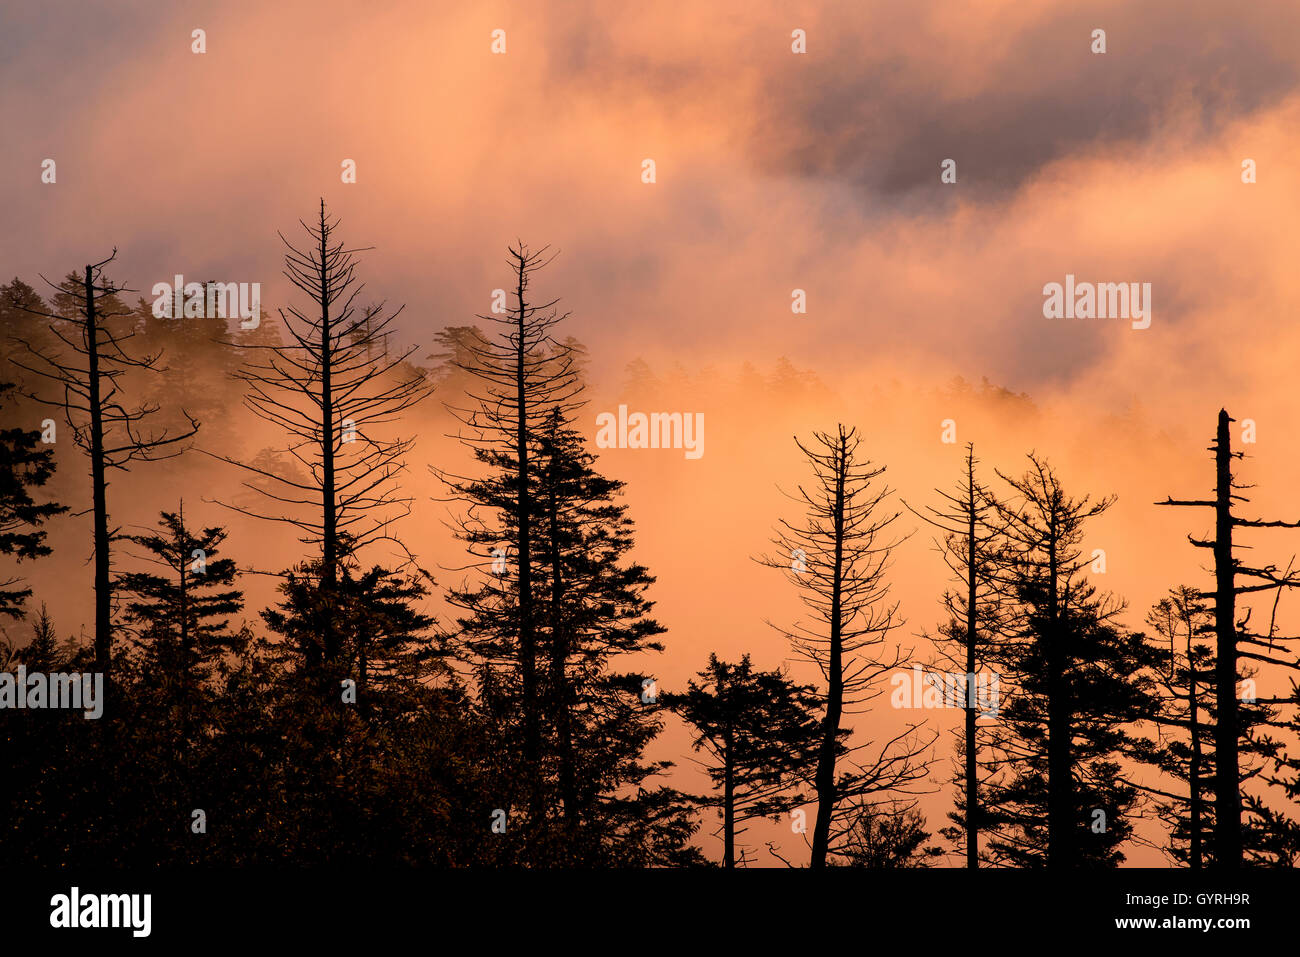 Dead Fraser Fir (Abies fraseri) trees, sunrise, Clingmans Dome, Great Smoky Mountains National Park, Tennessee USA - Stock Image